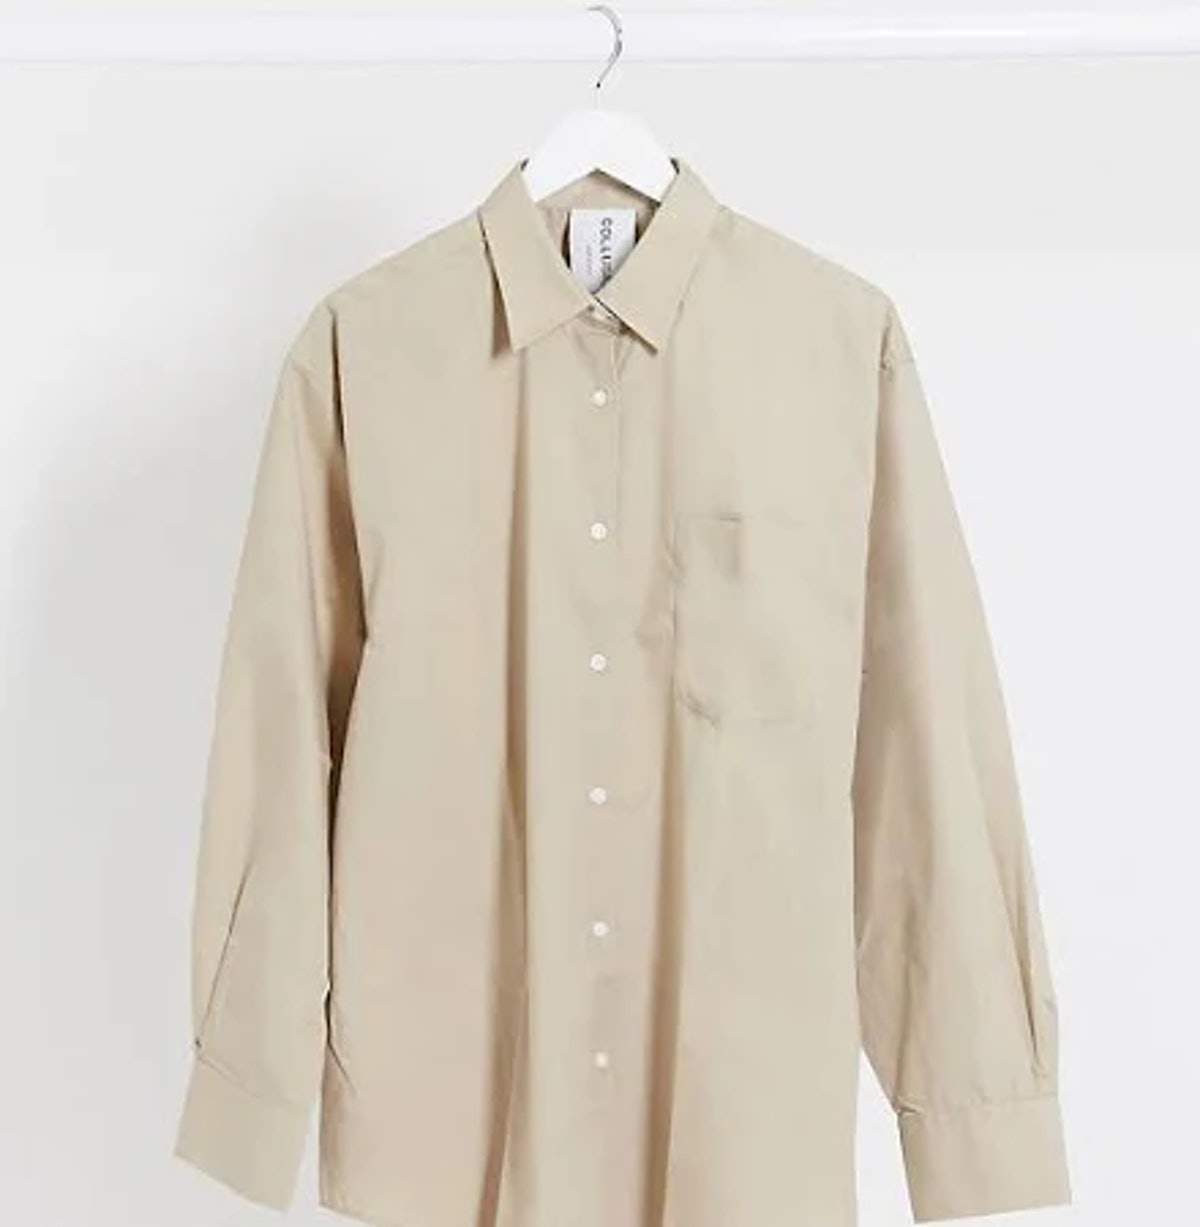 COLLUSION oversized shirt in stone